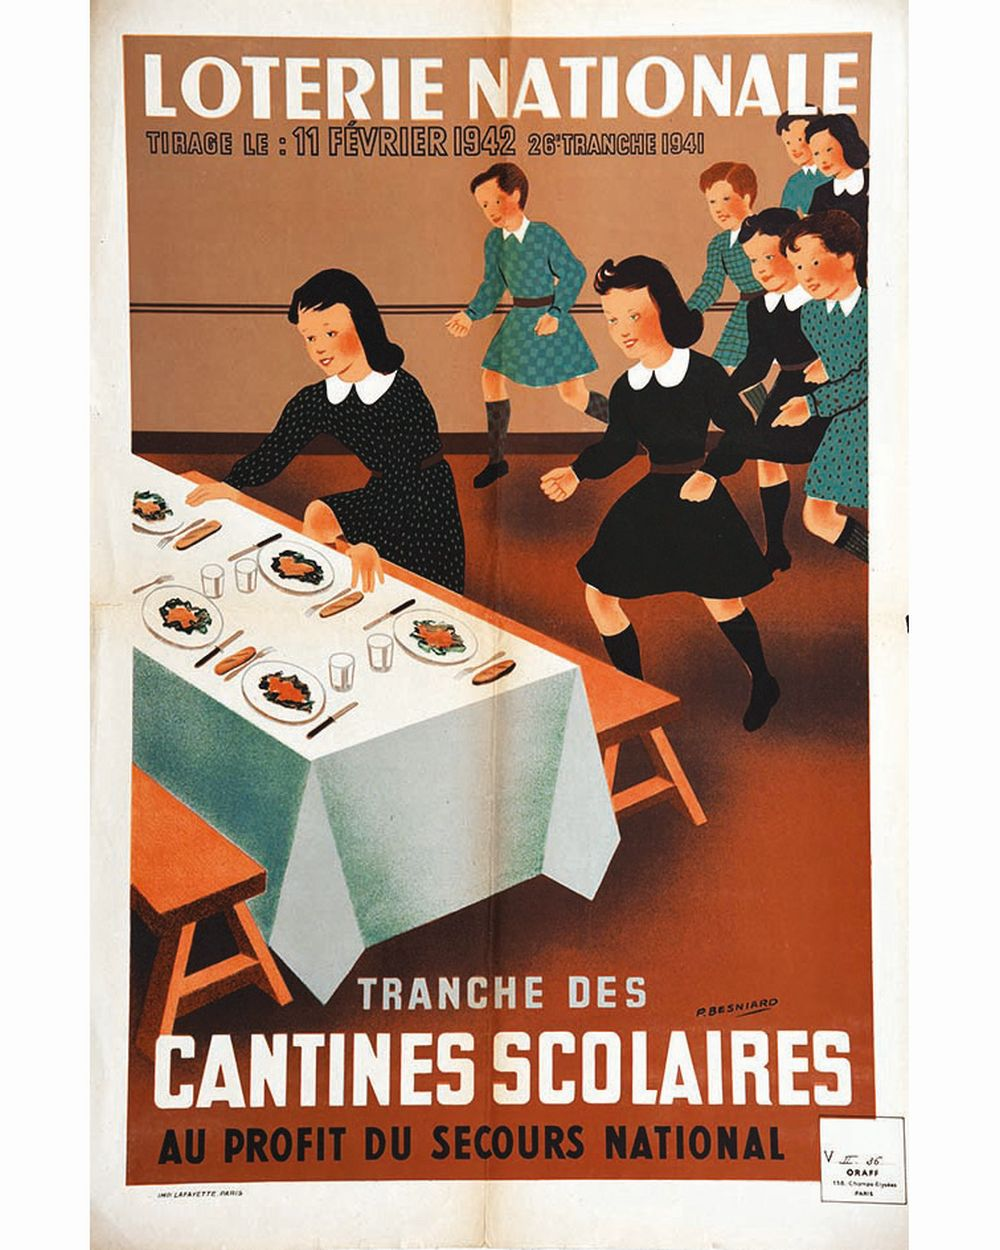 BESNIARD P. - Cantines Scolaires Loterie Nationale     1941